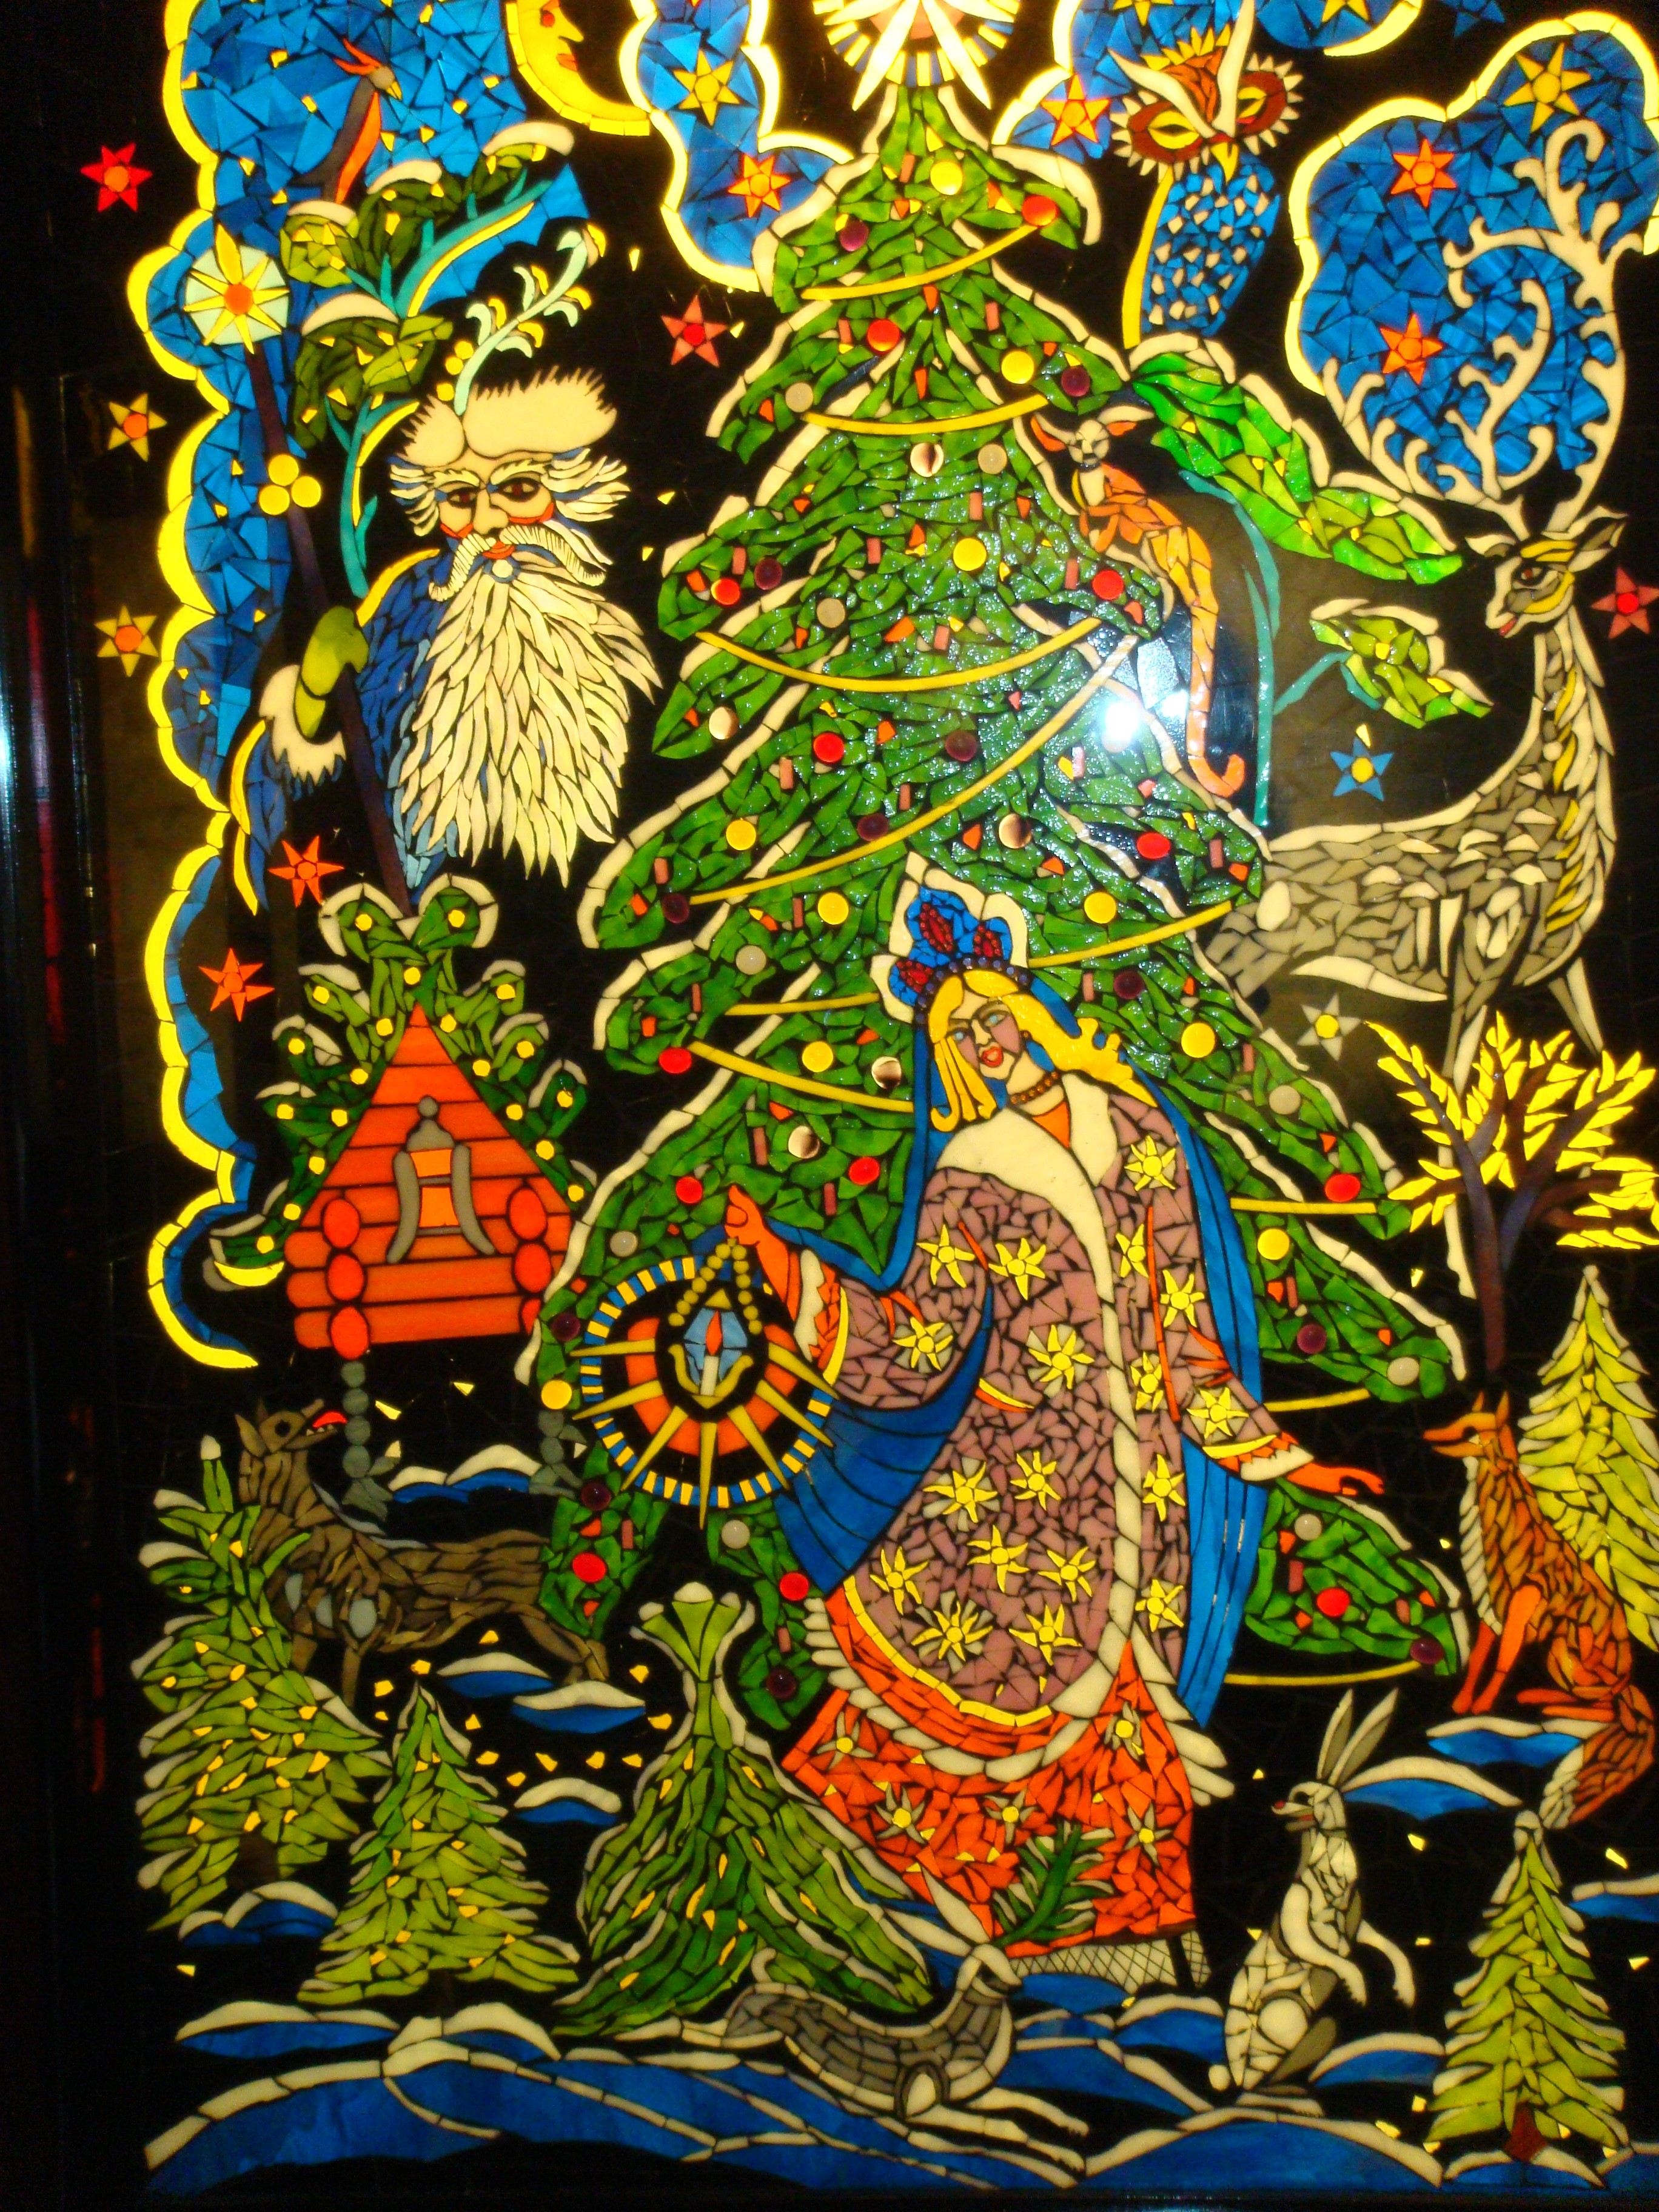 Visit Chicago's Museum of Stained Glass at Navy Pier ...